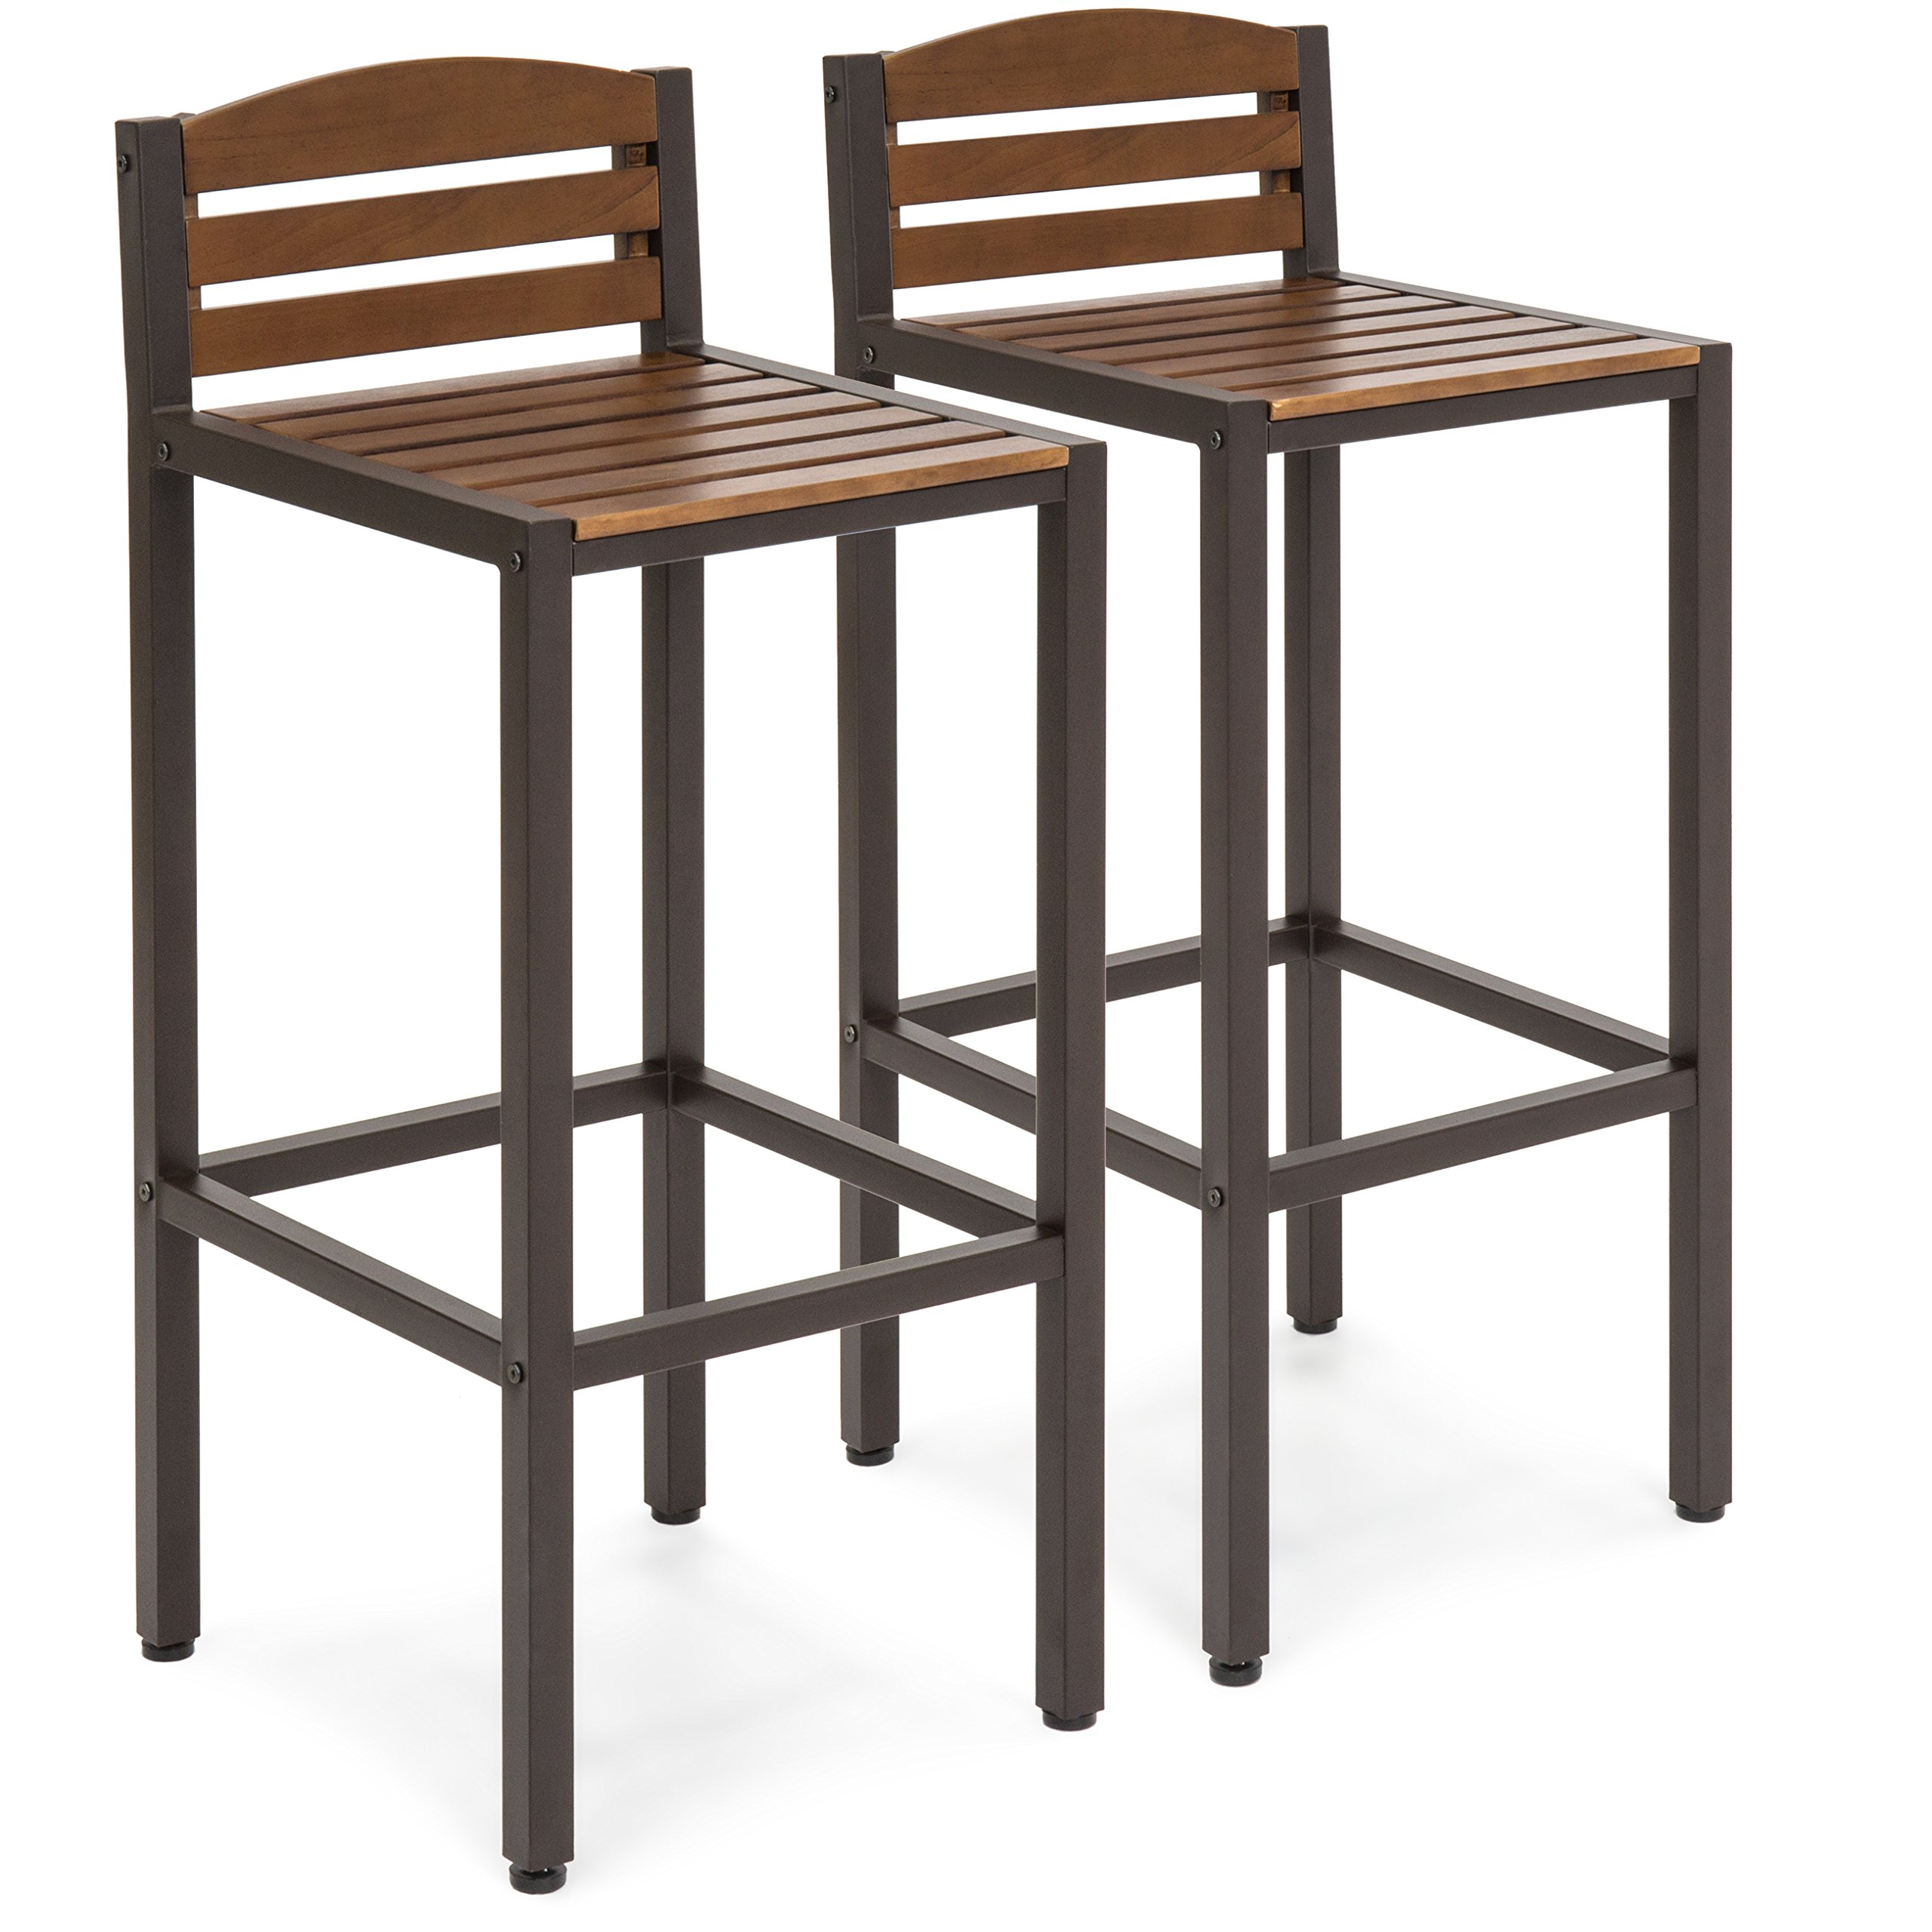 Best Choice Products Set of 2 Outdoor Acacia Wood Patio Accent Barstools with Slatted Seat and Backrest, Brown by Best Choice Products